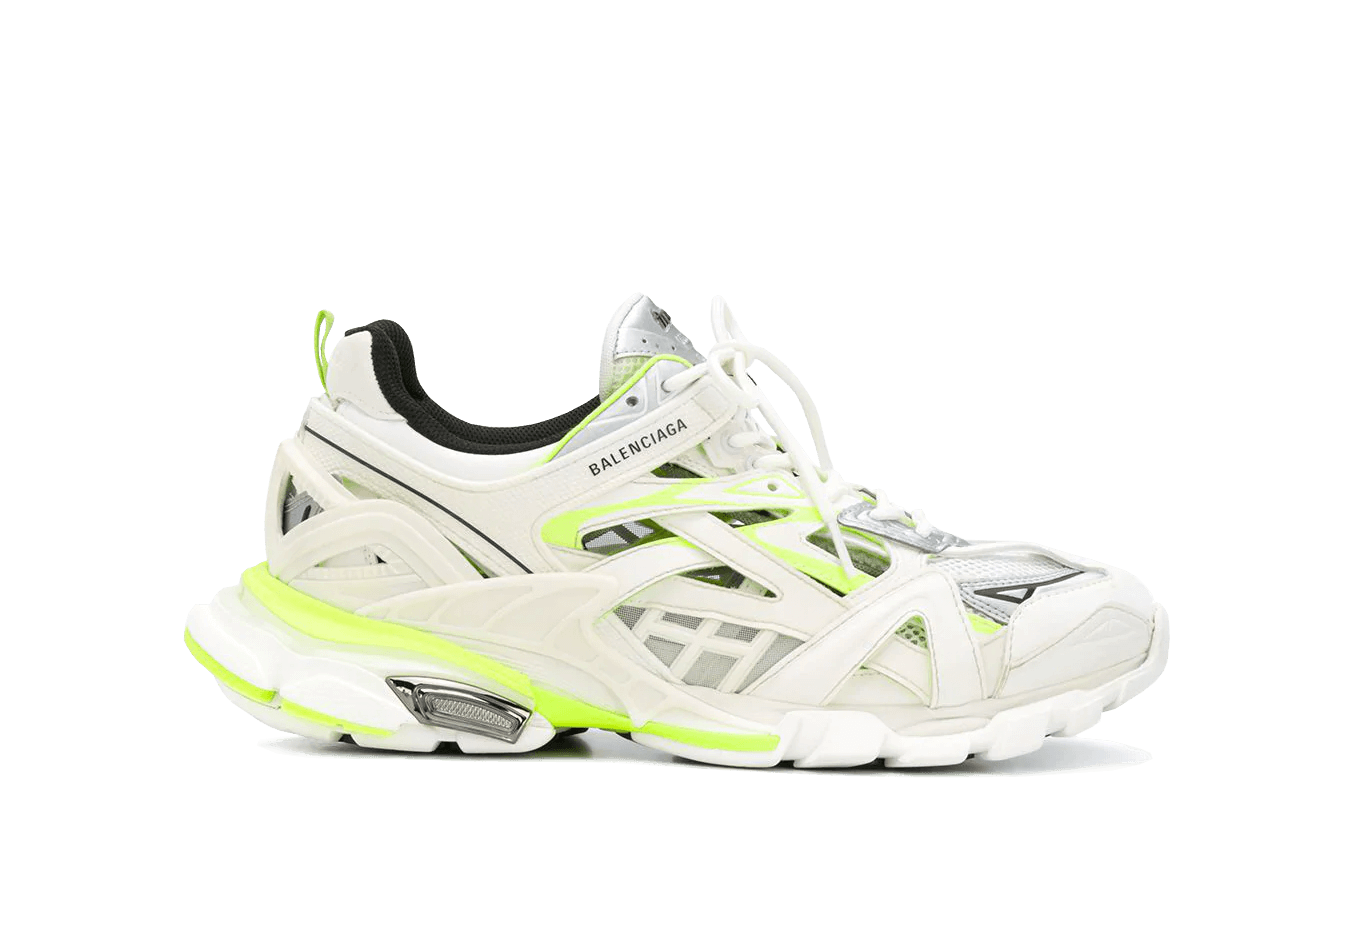 Buy Womens      White and Neon Yellow shoes online